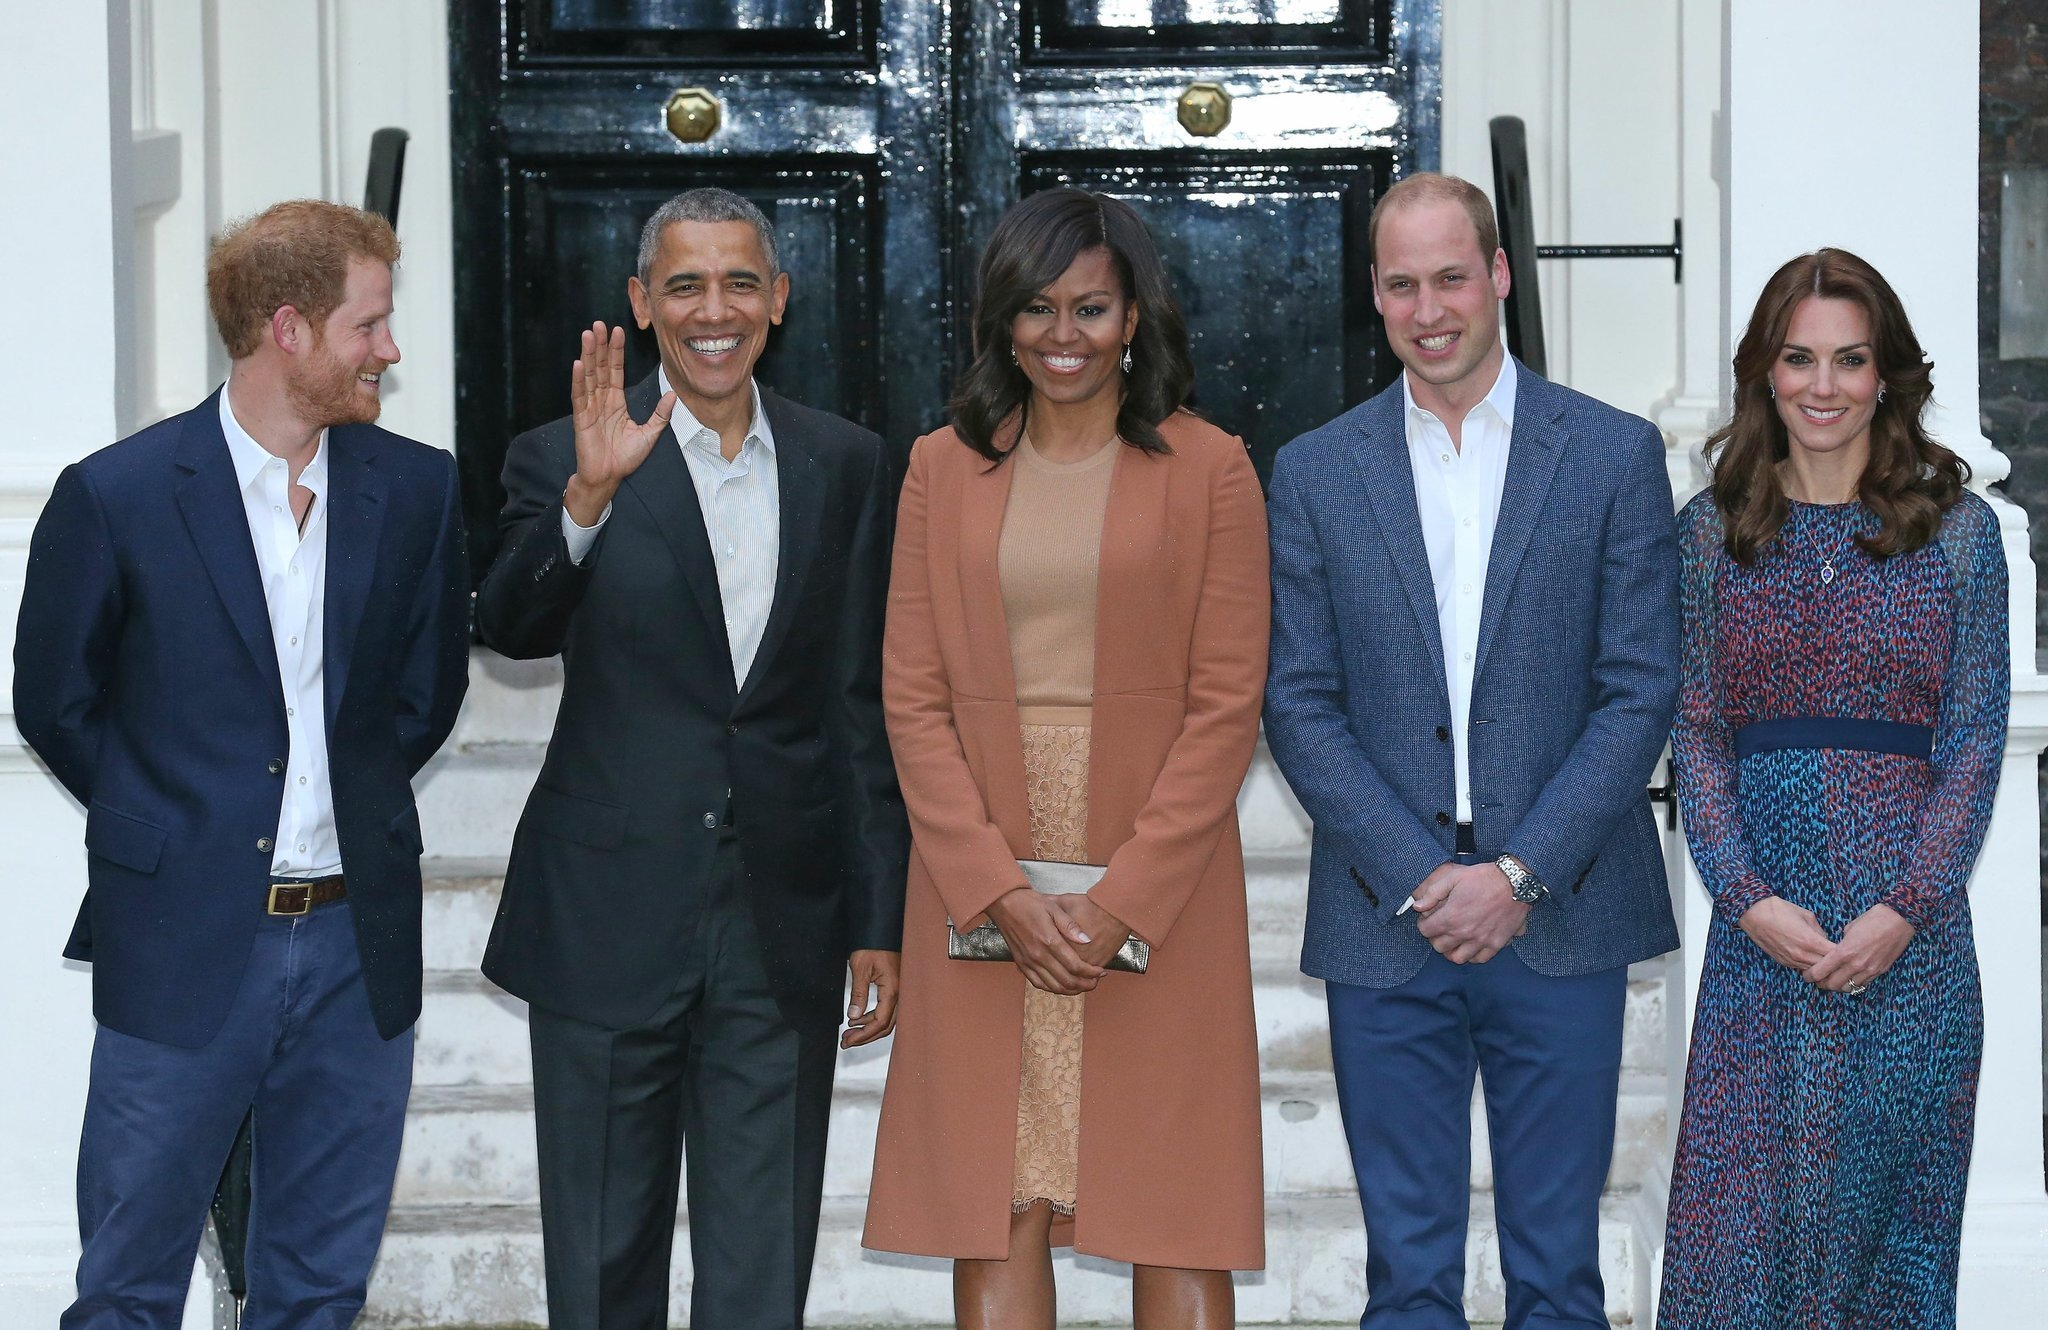 The Latest Obamas Capping Day At Kensington Palace The San Diego